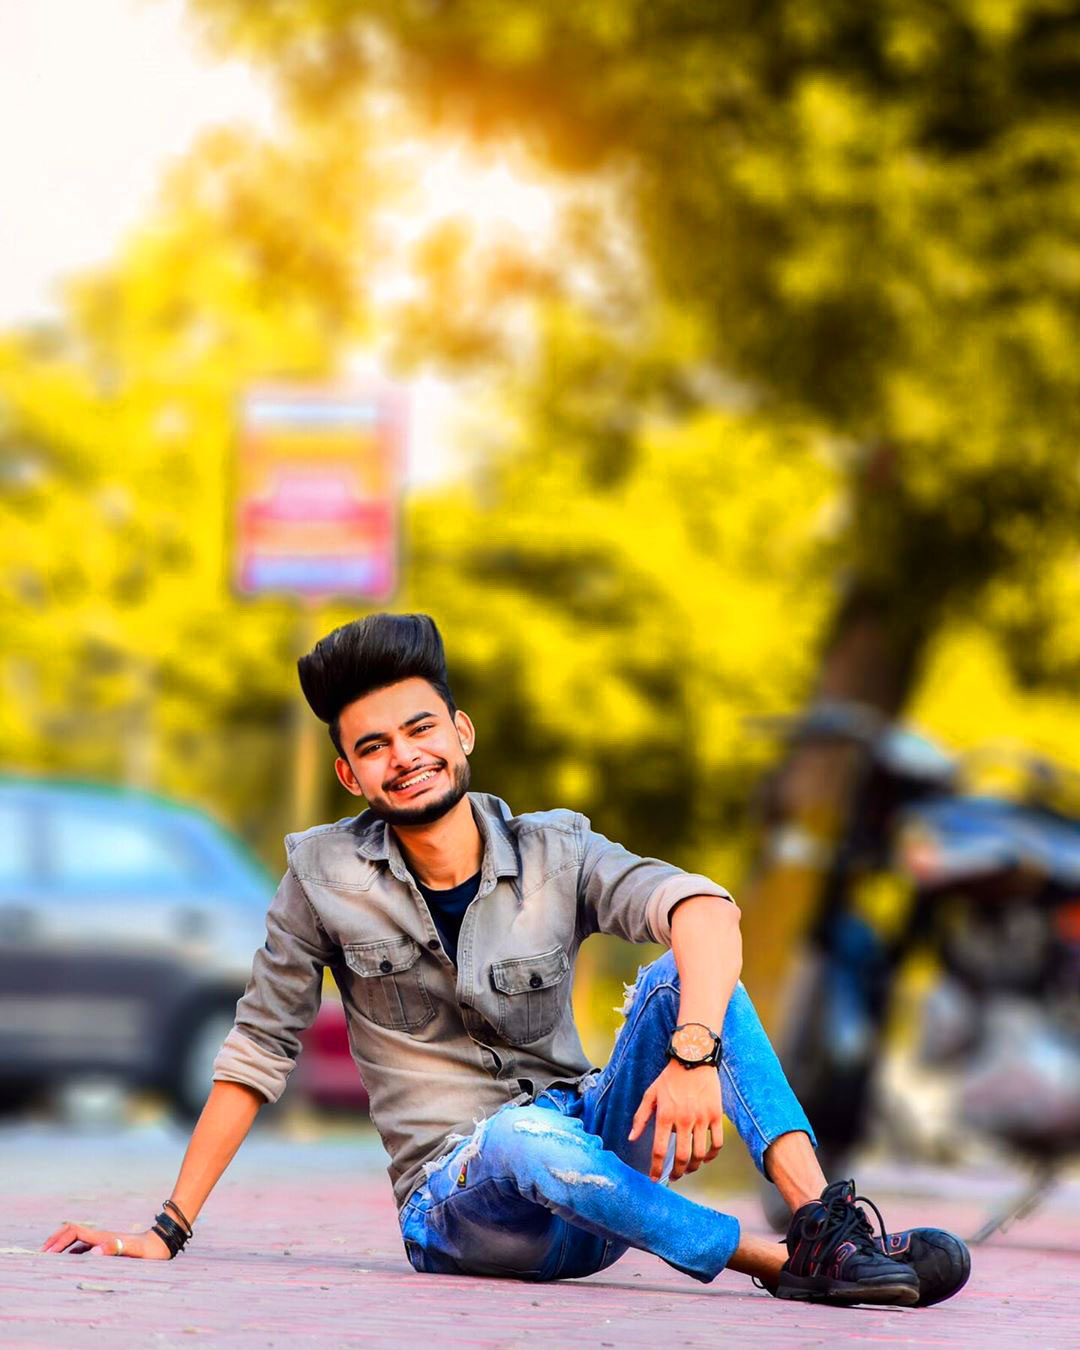 pictures of Latest Smart Stylish Boy Images